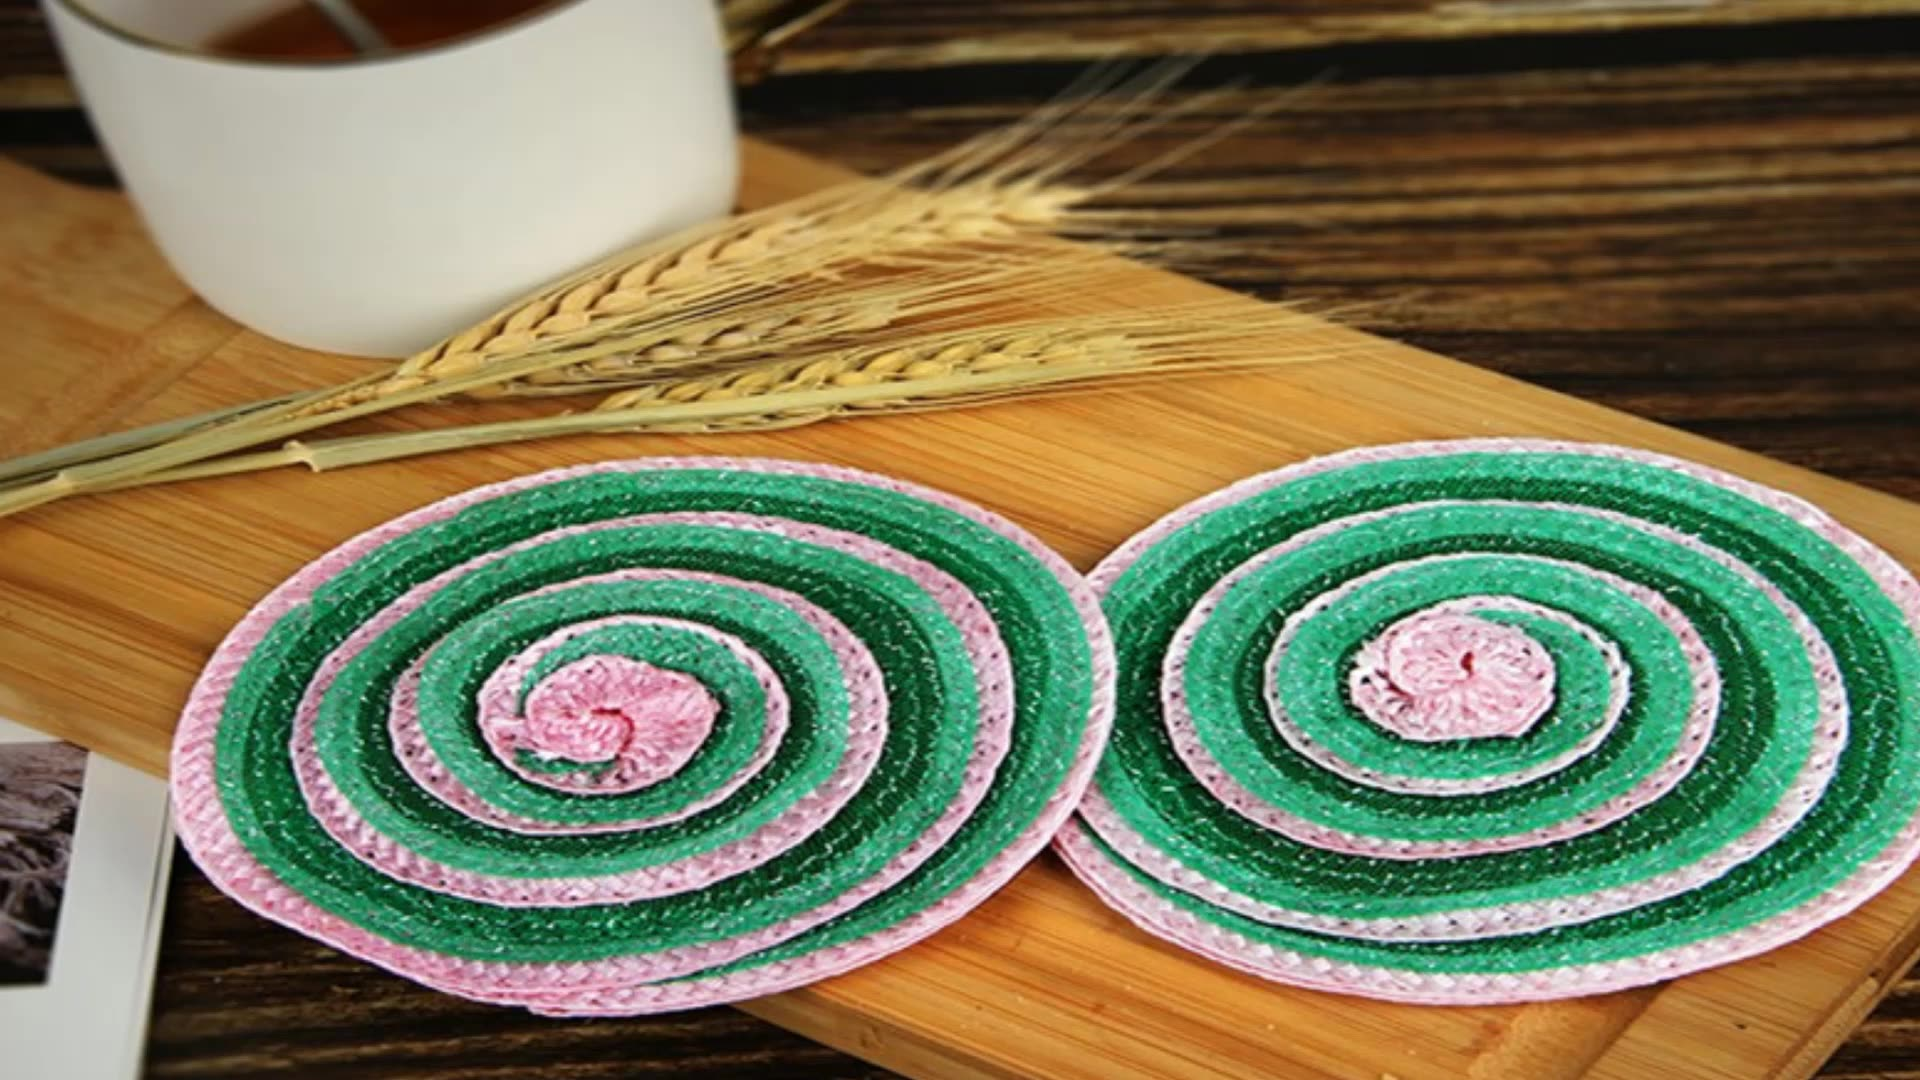 Waterproof drink coaster set Xmas holiday placemats for kitchen home decoration